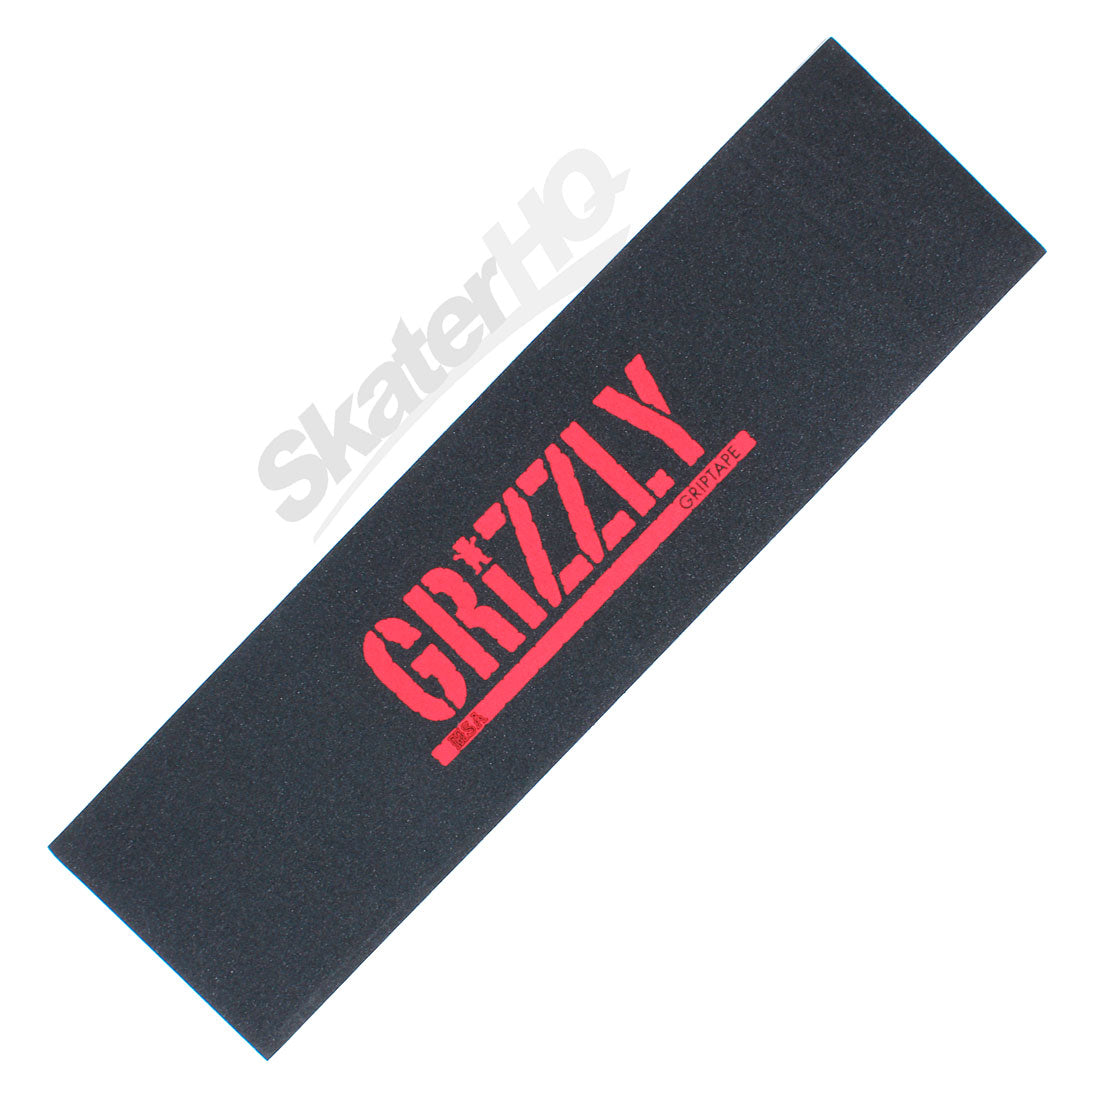 Grizzly Manny Santiago Signature Grip